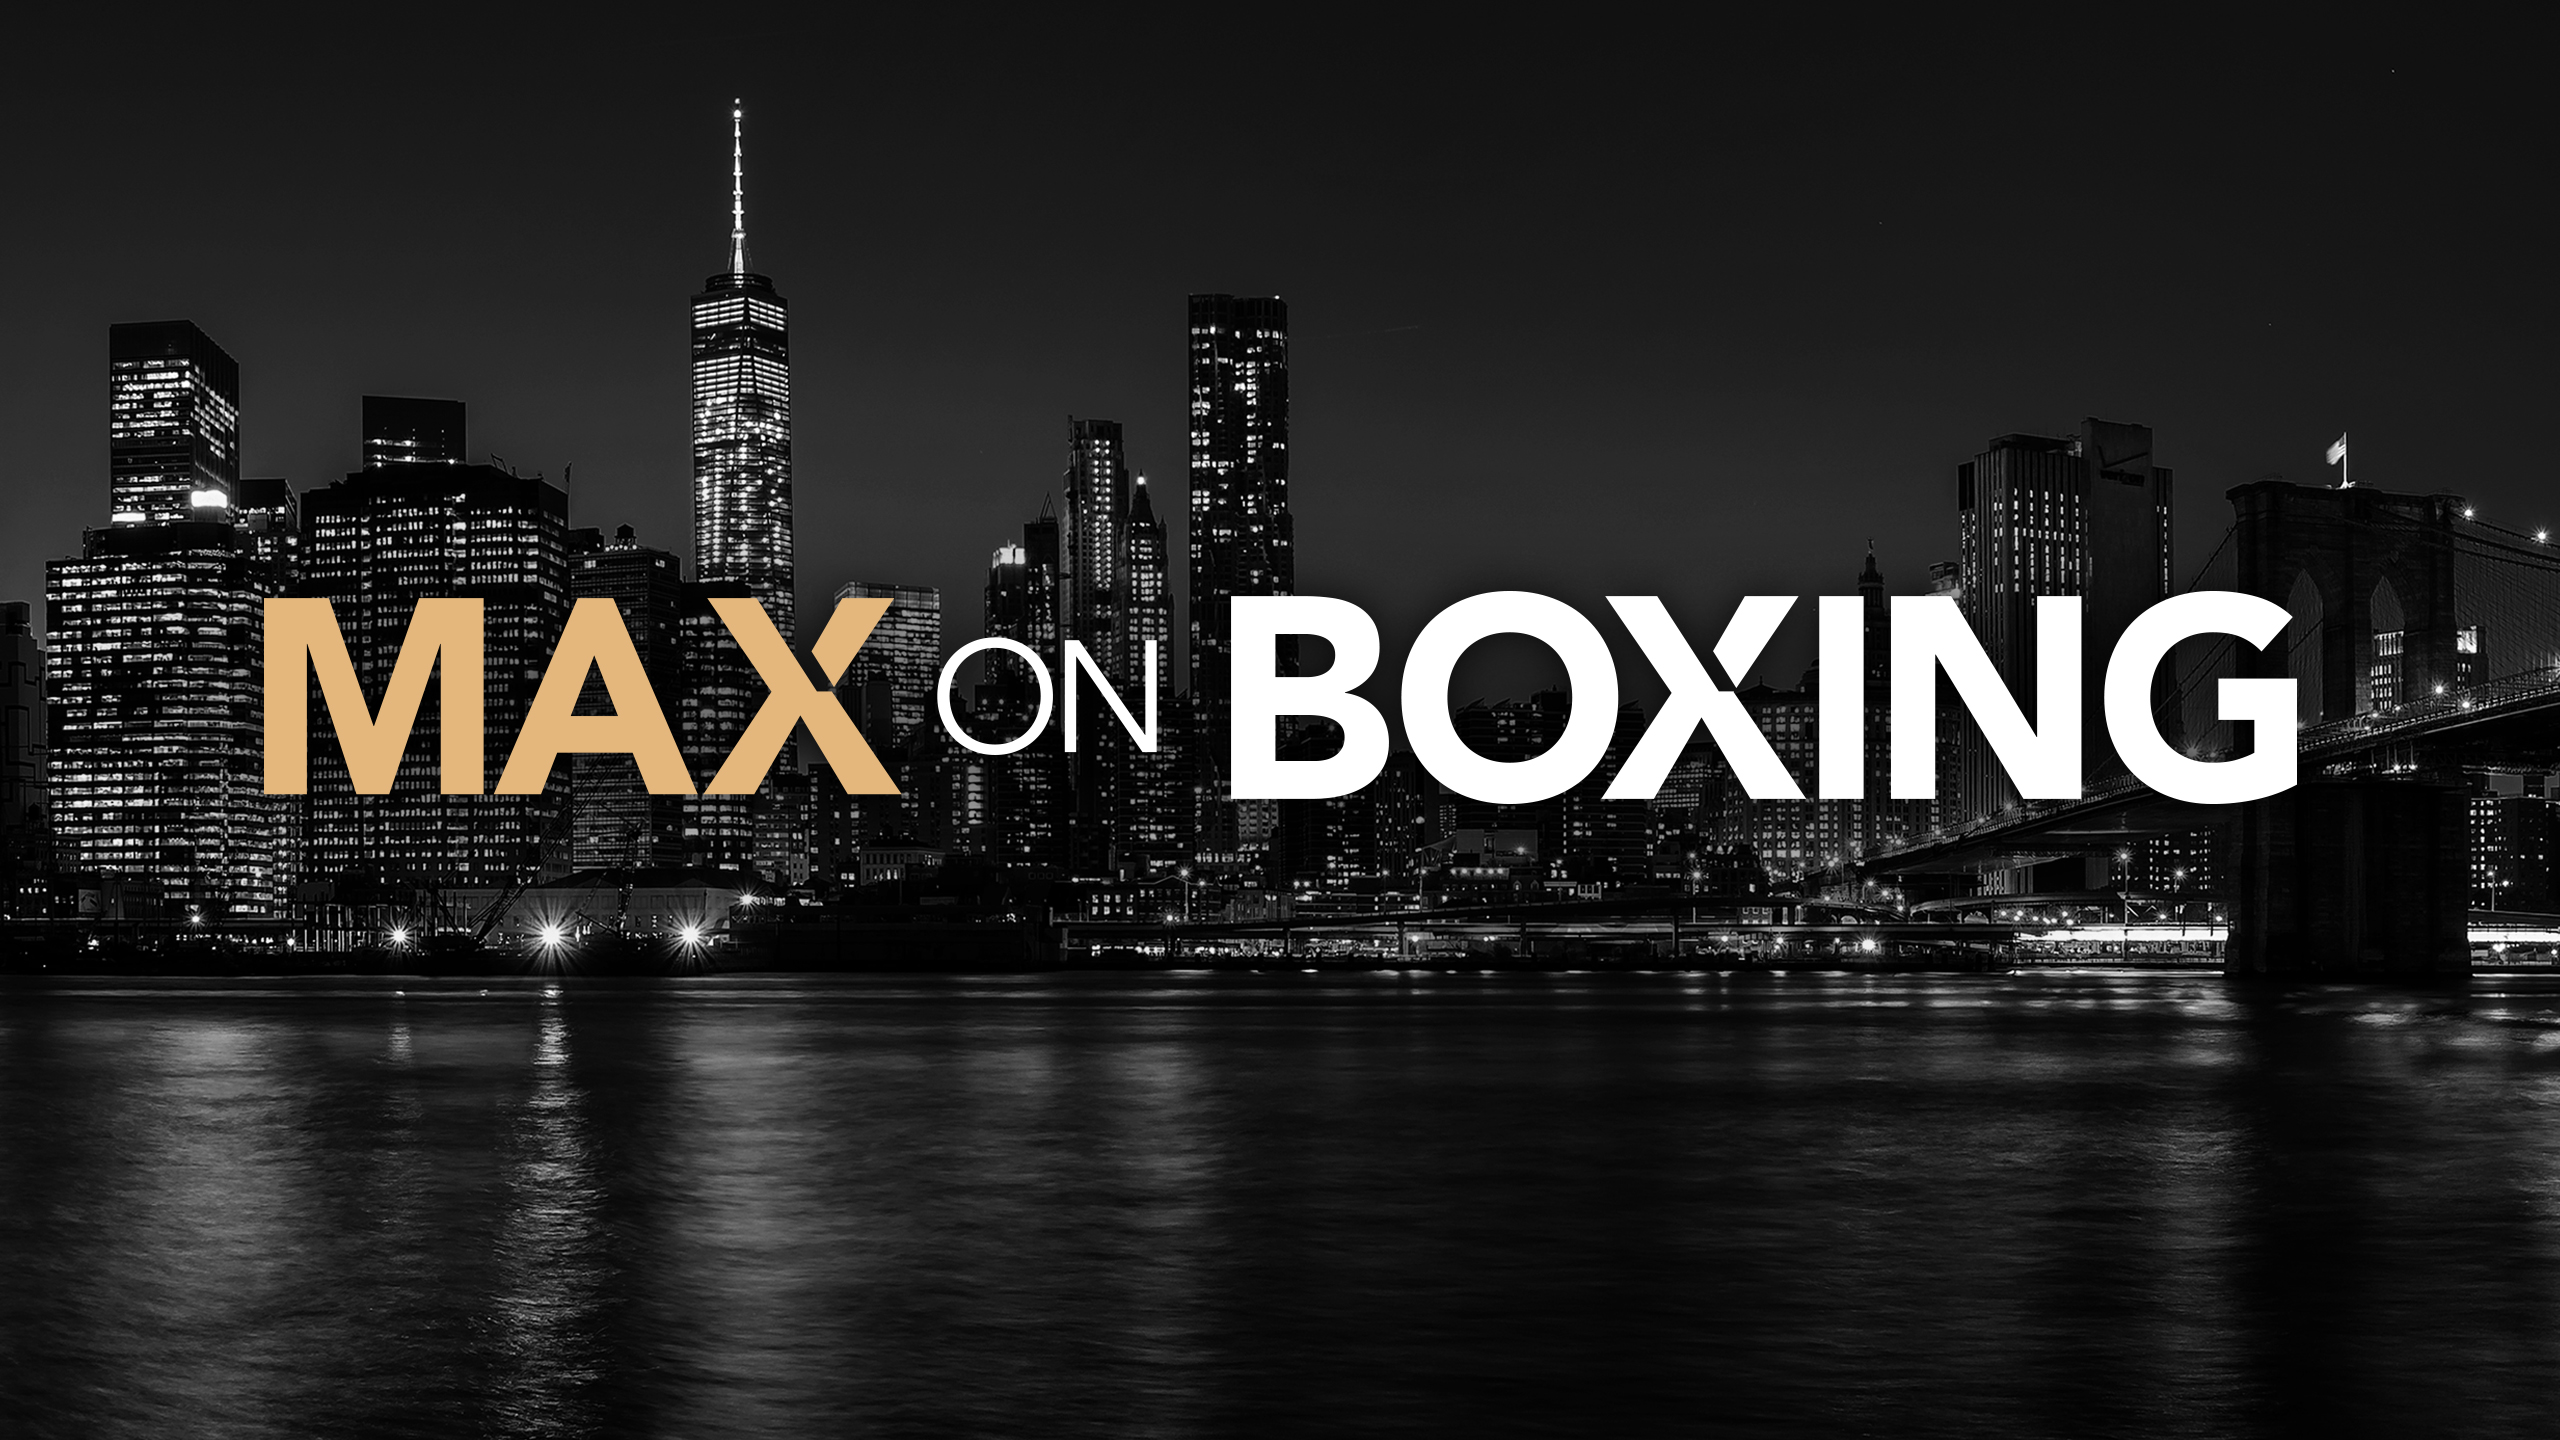 Fri, 2/22 - Max on Boxing